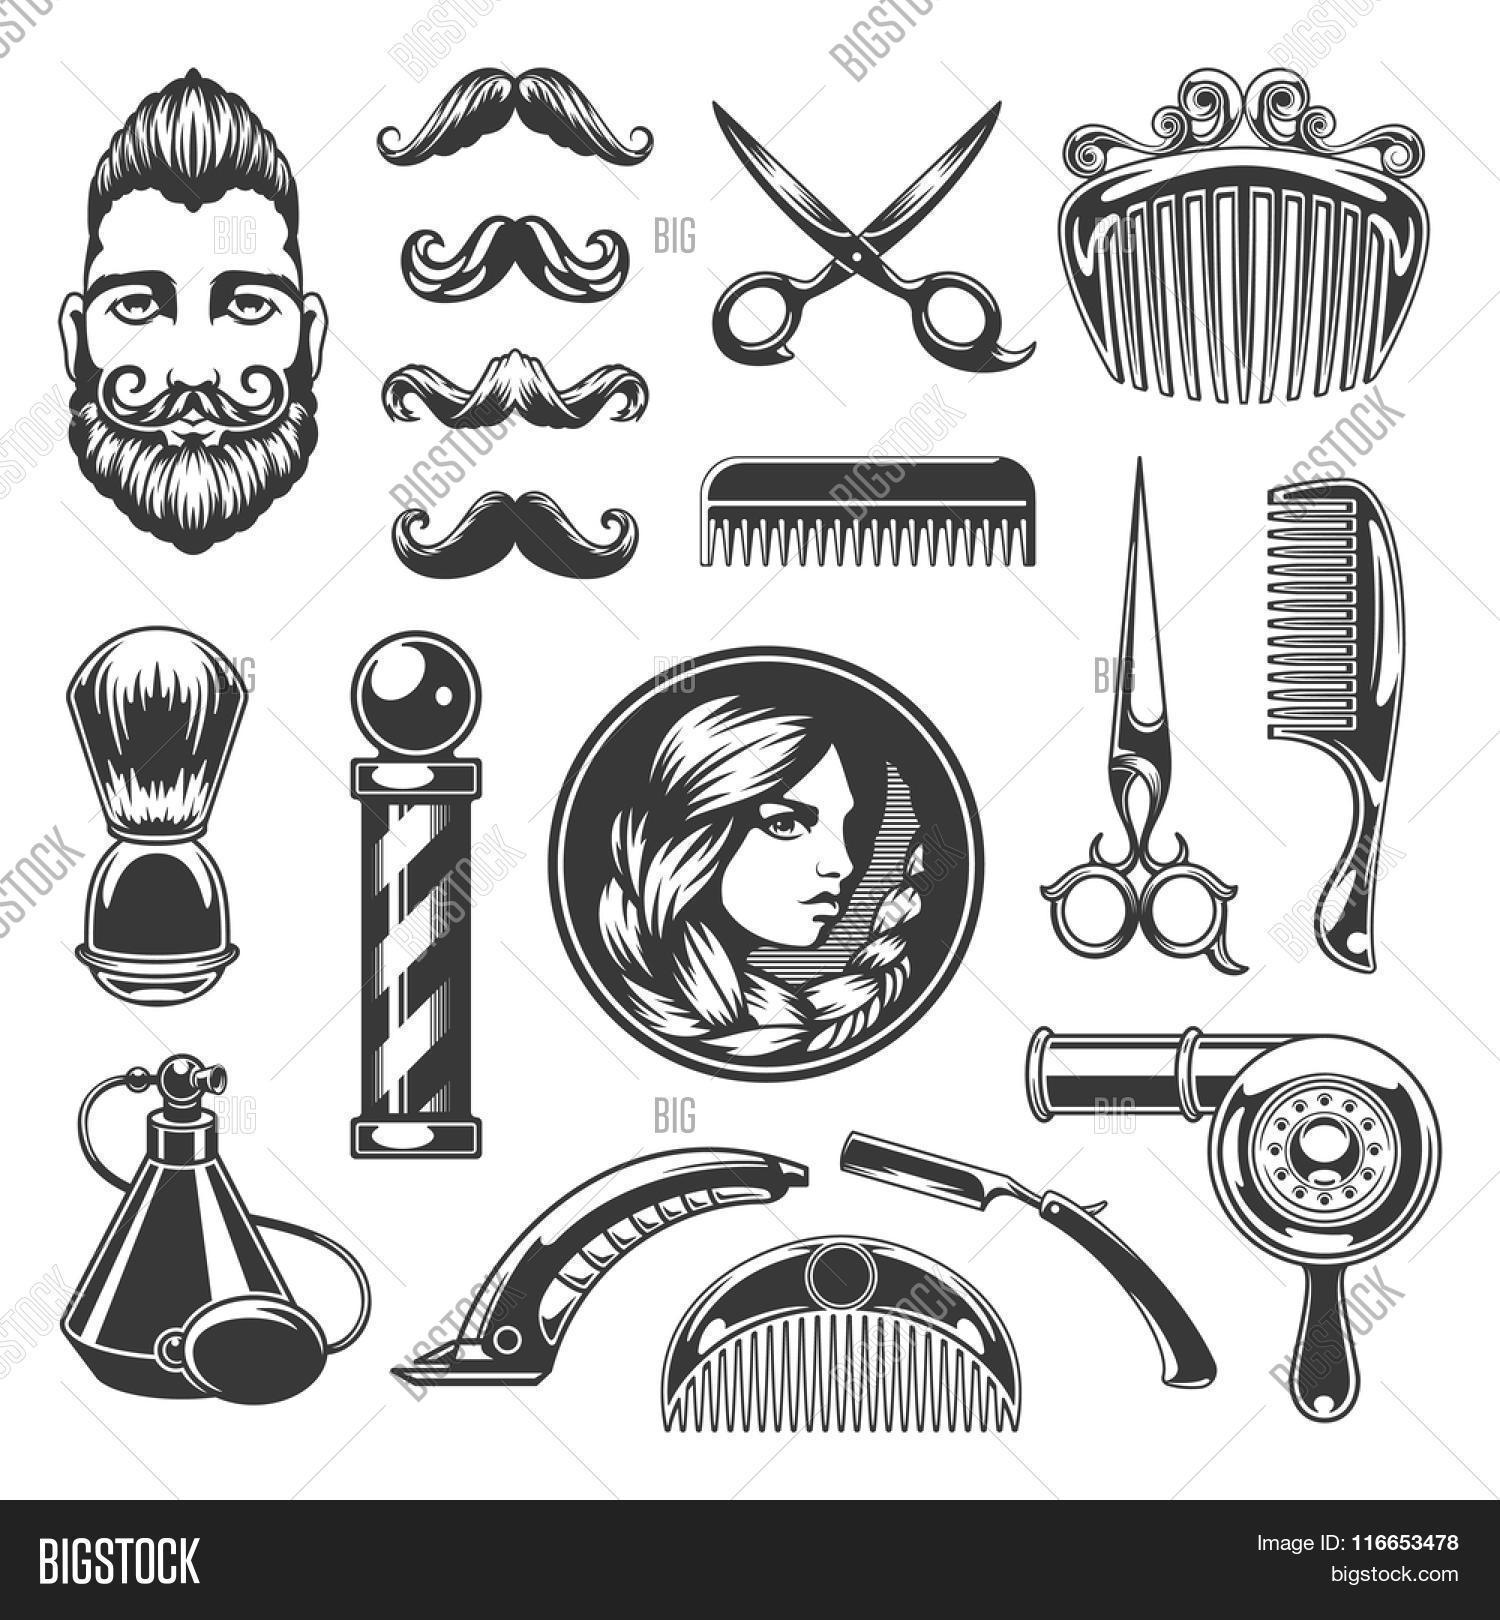 Clip art vector of vintage barber shop logo graphics and icon vector - Barber Shop Vector Silhouettes And Icons Set For Logos Labels Badges And Advertising